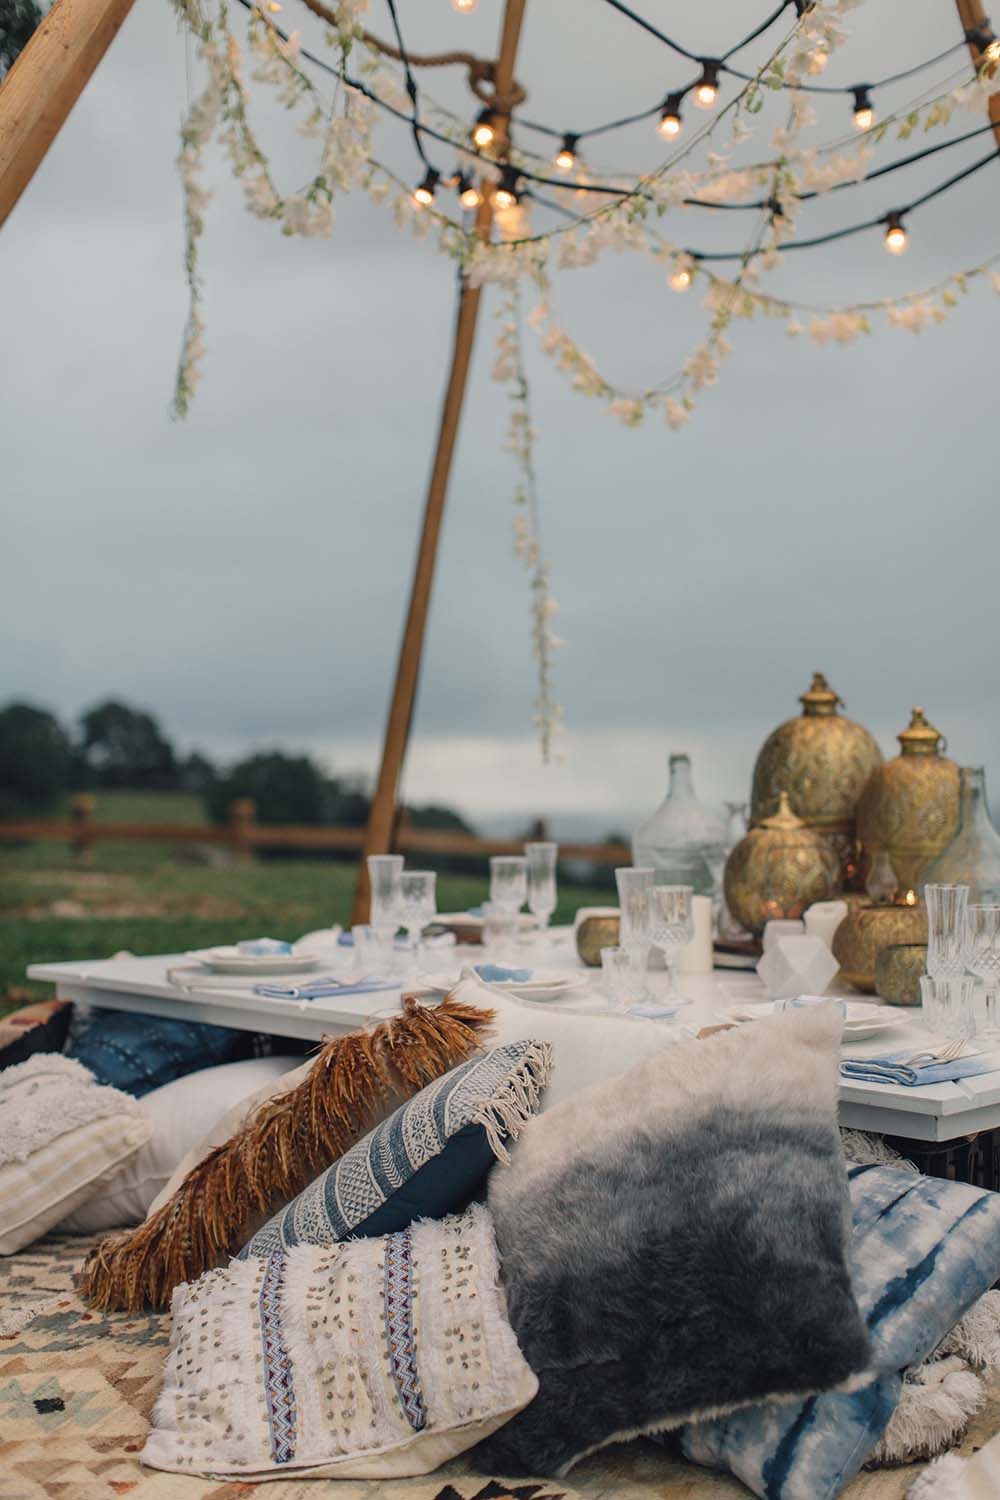 At Dusk Tweed Hinterland Styled Shoot Bramblewood Farm   The Events Lounge - Gold Coast Wedding Planner and Stylist - www.theeventslounge.com.au